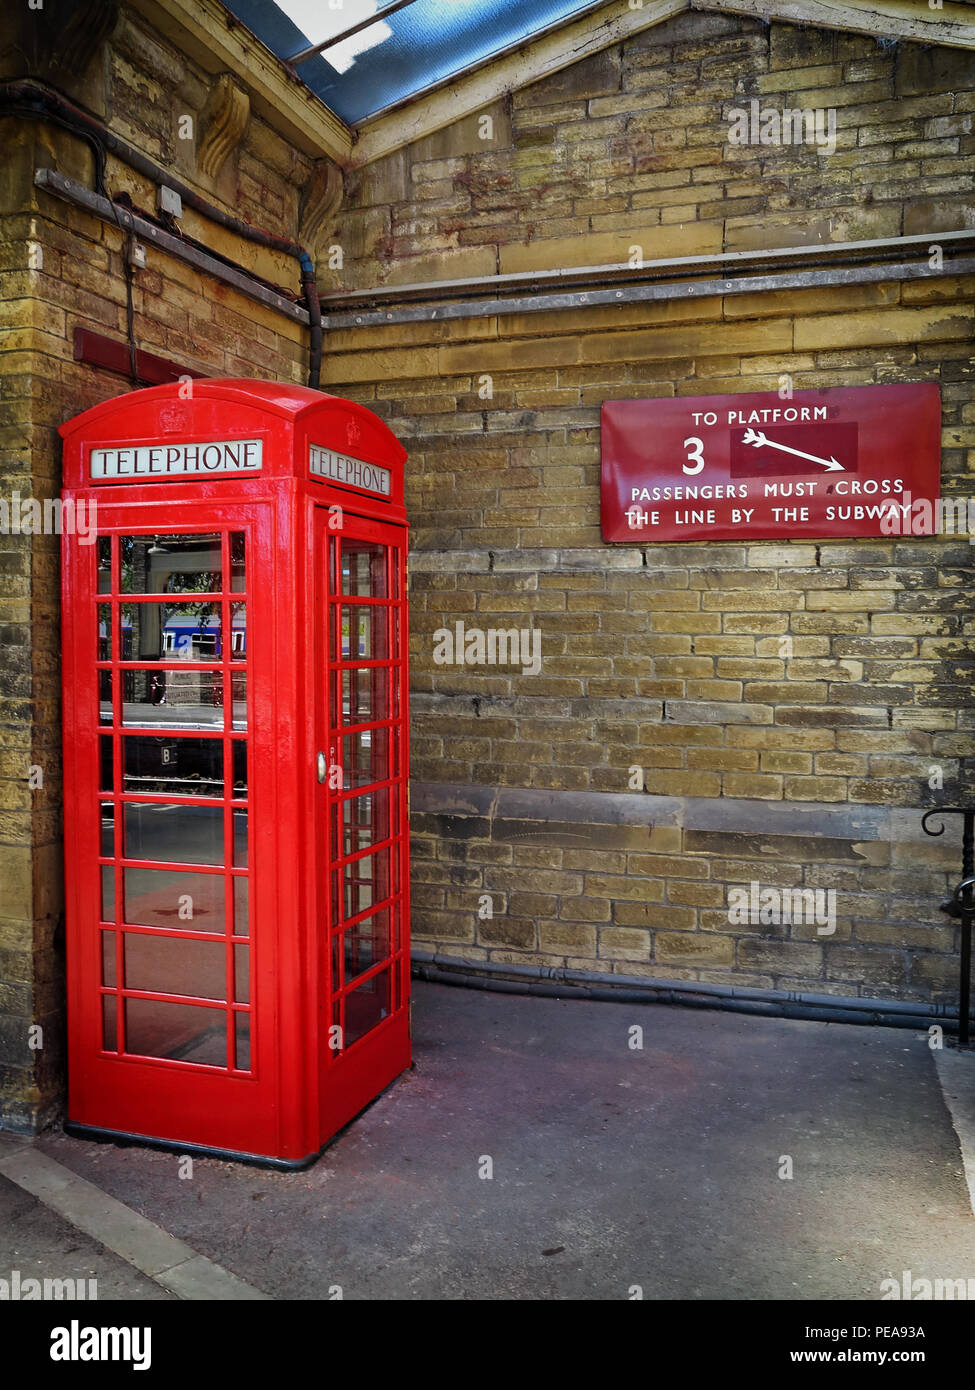 A historic red telephone box and platform sign at Keighley station - Stock Image